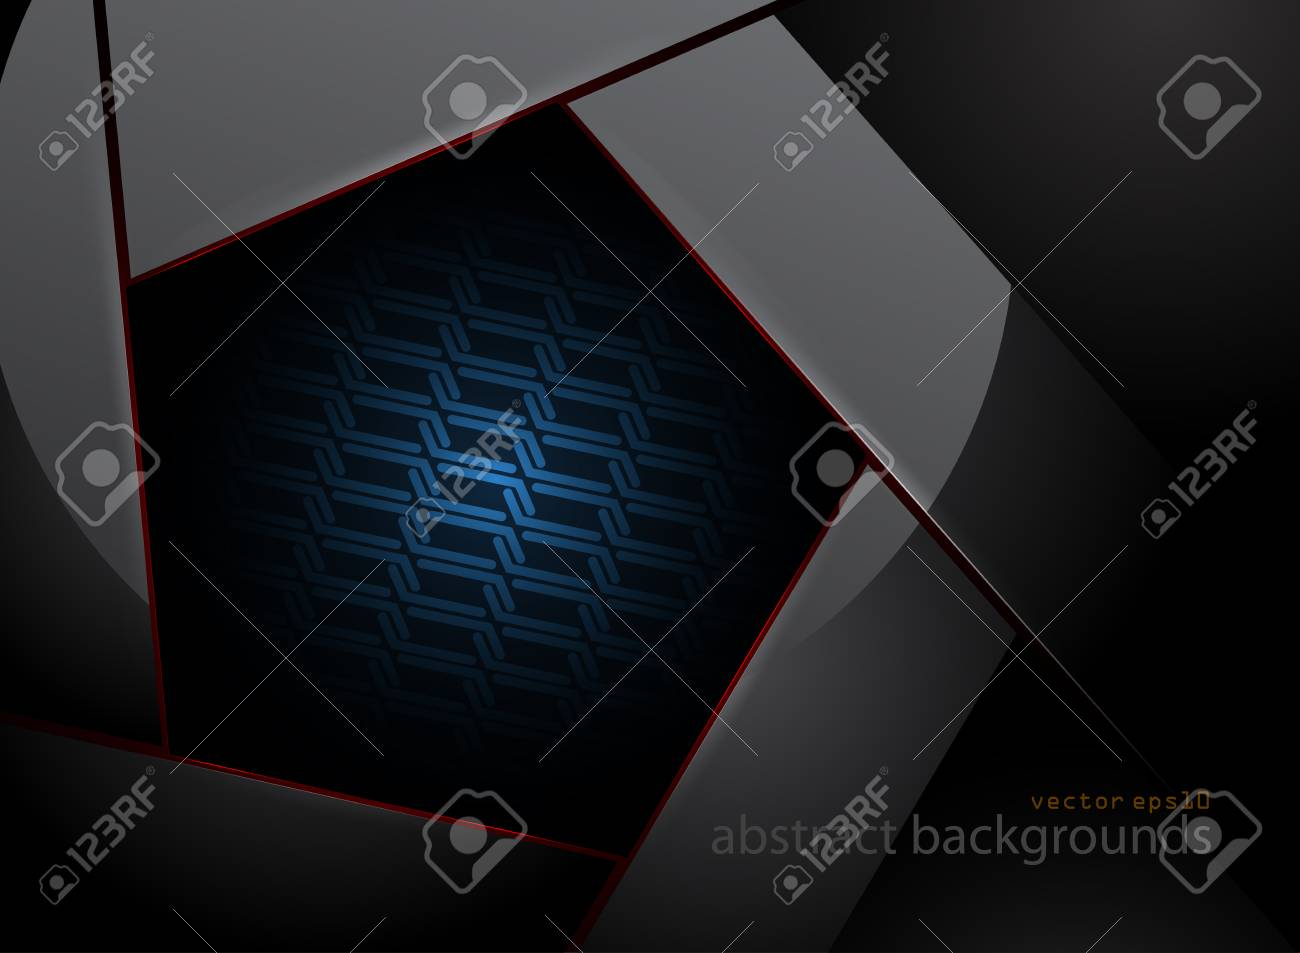 Pentagonal Shapes In Dark Scene Vector Abstract Wallpaper Backgrounds